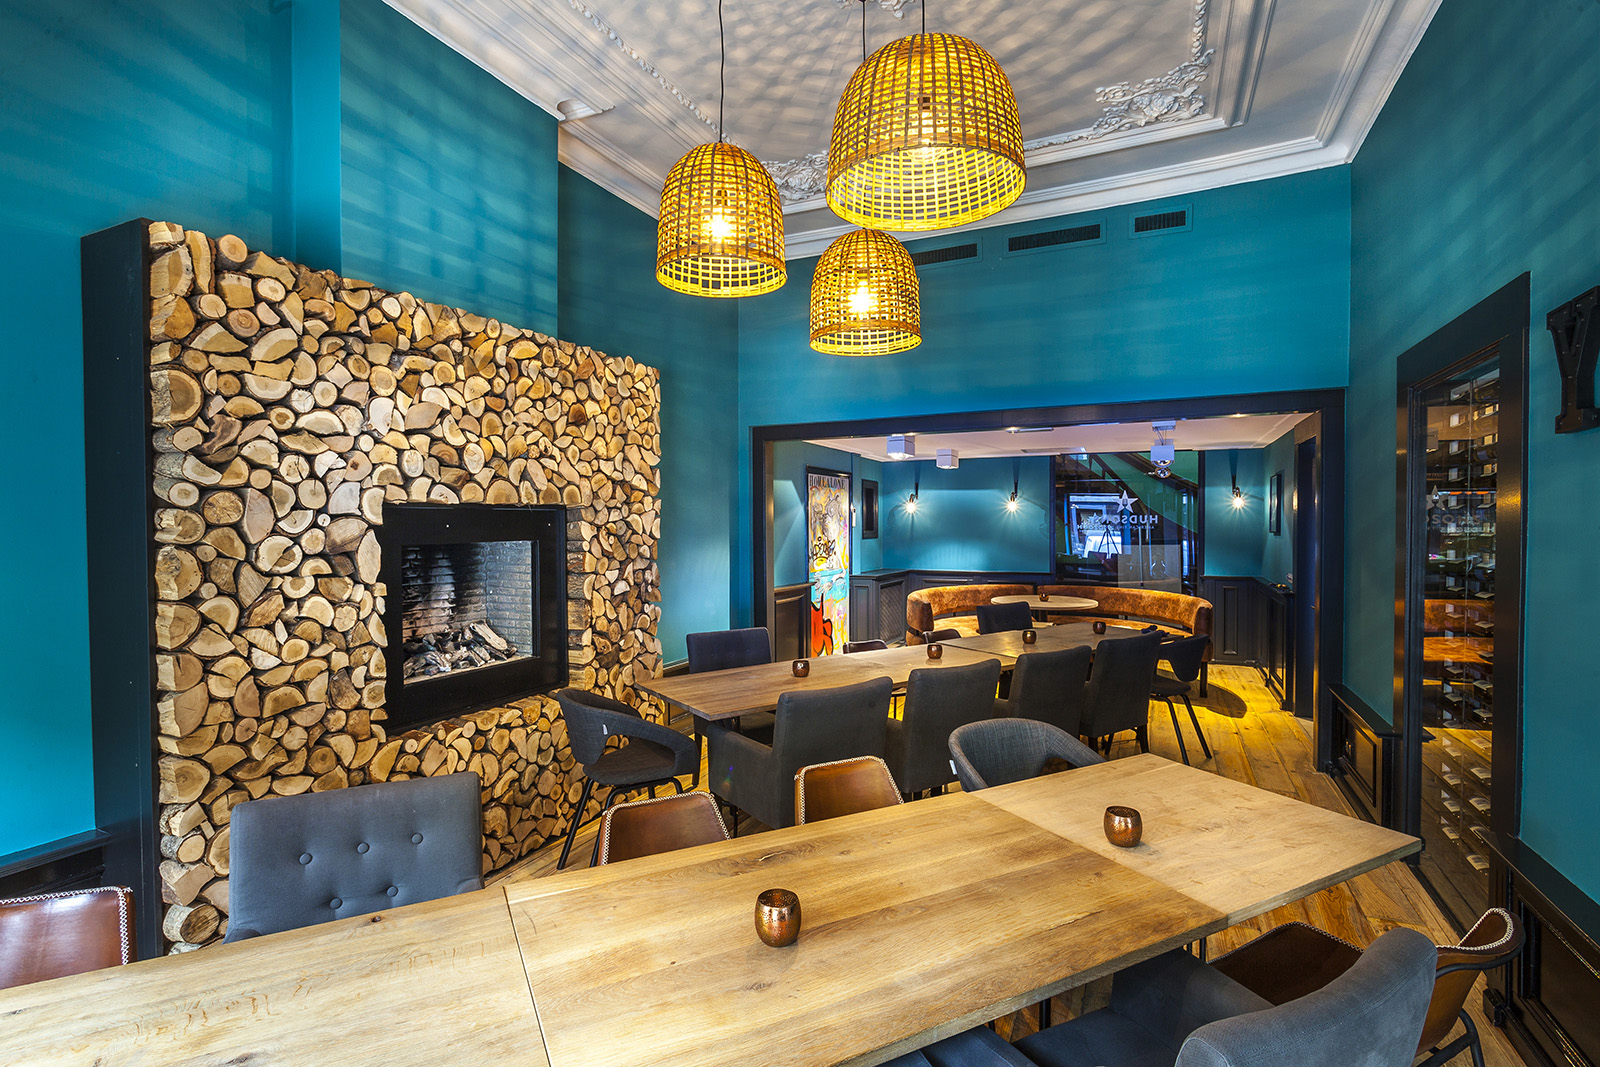 Hudsons horeca renovatie knuif bouwcombinatie b v for Interieur architect vacature